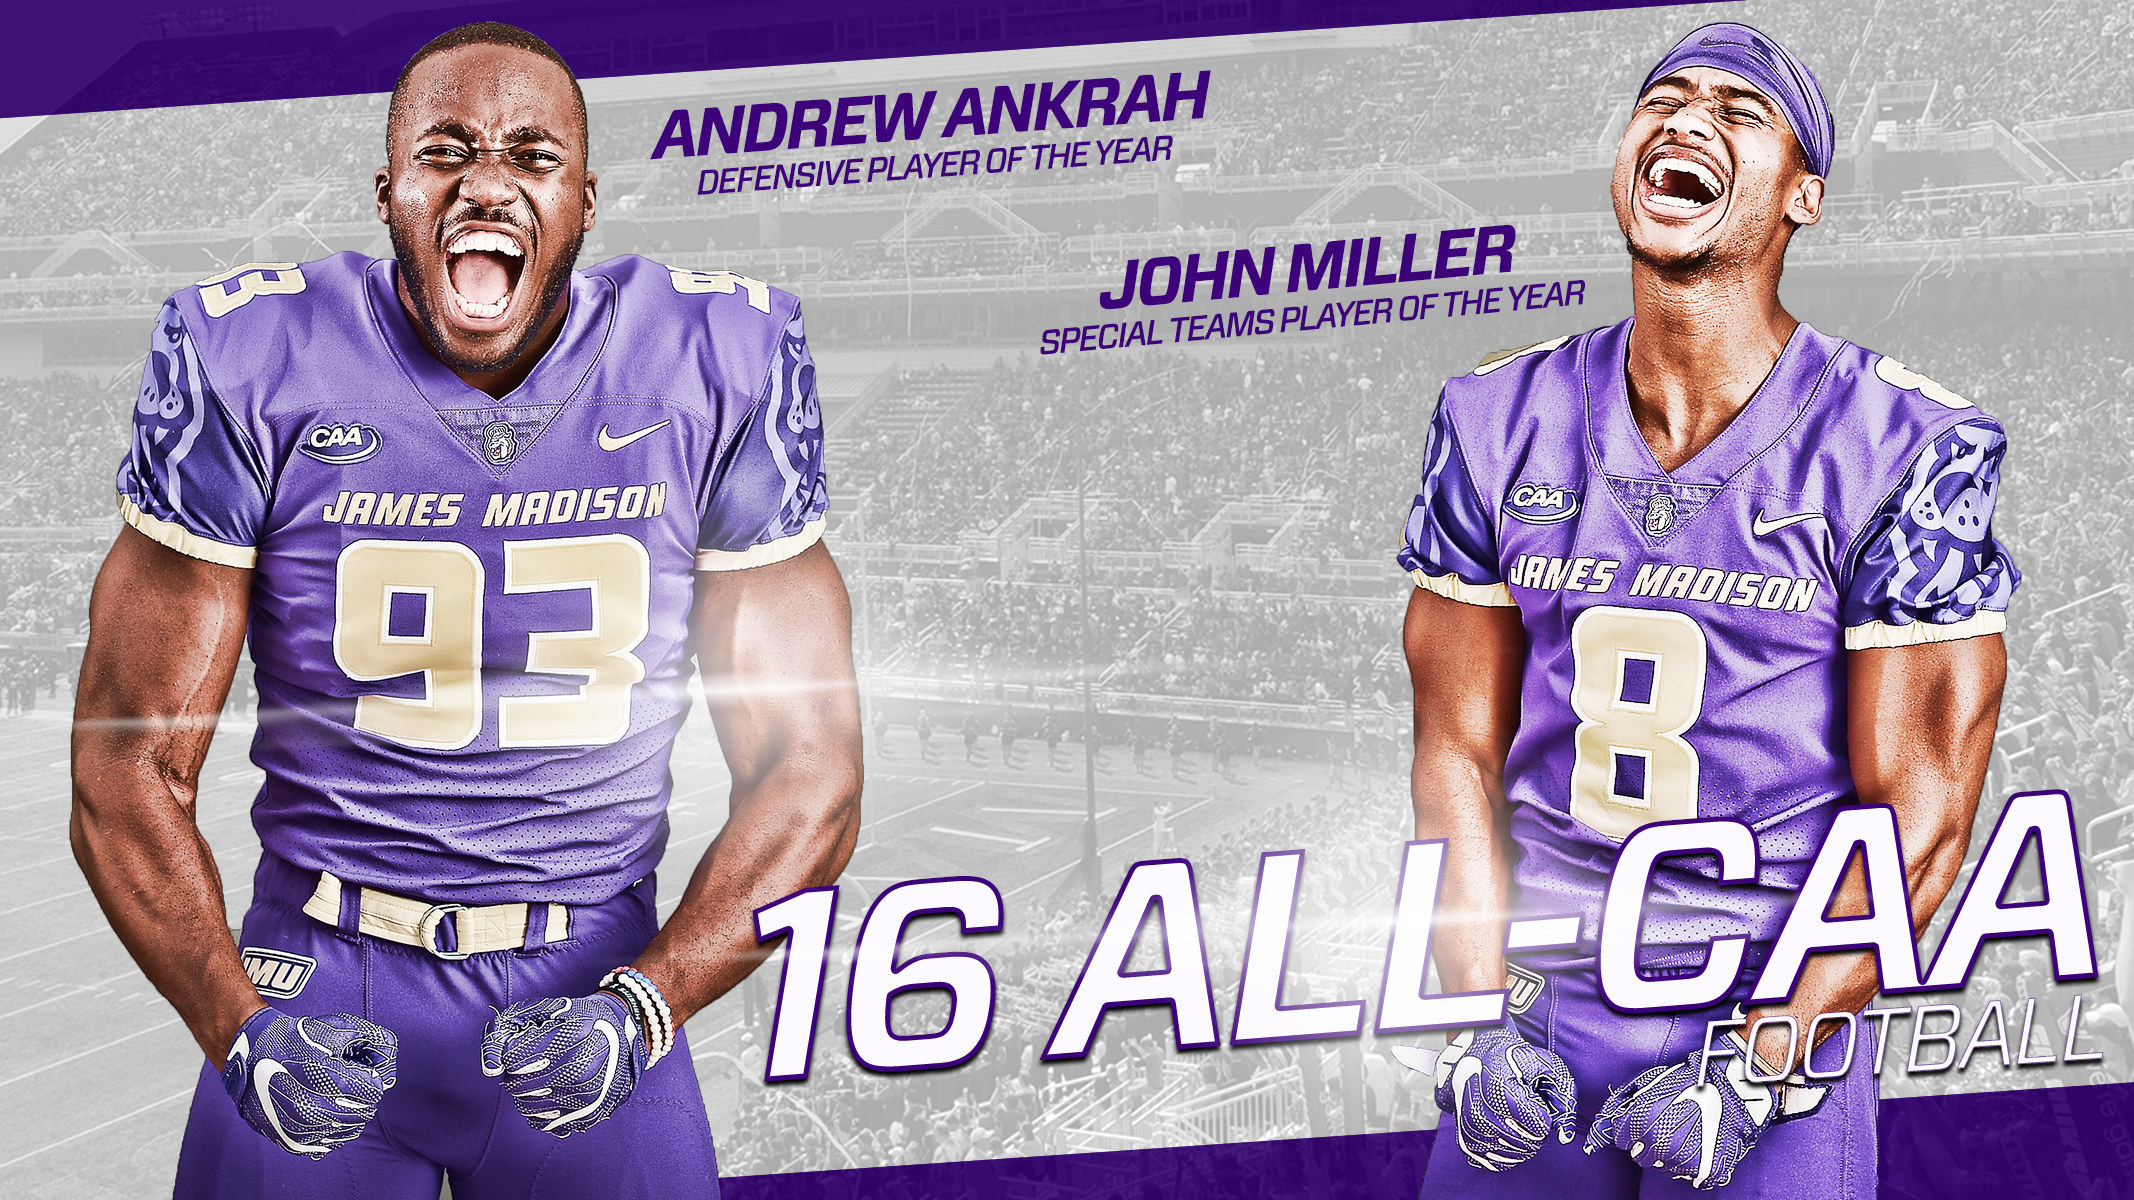 Football: Ankrah and Miller Headline 16 All-CAA Football Award Winners)